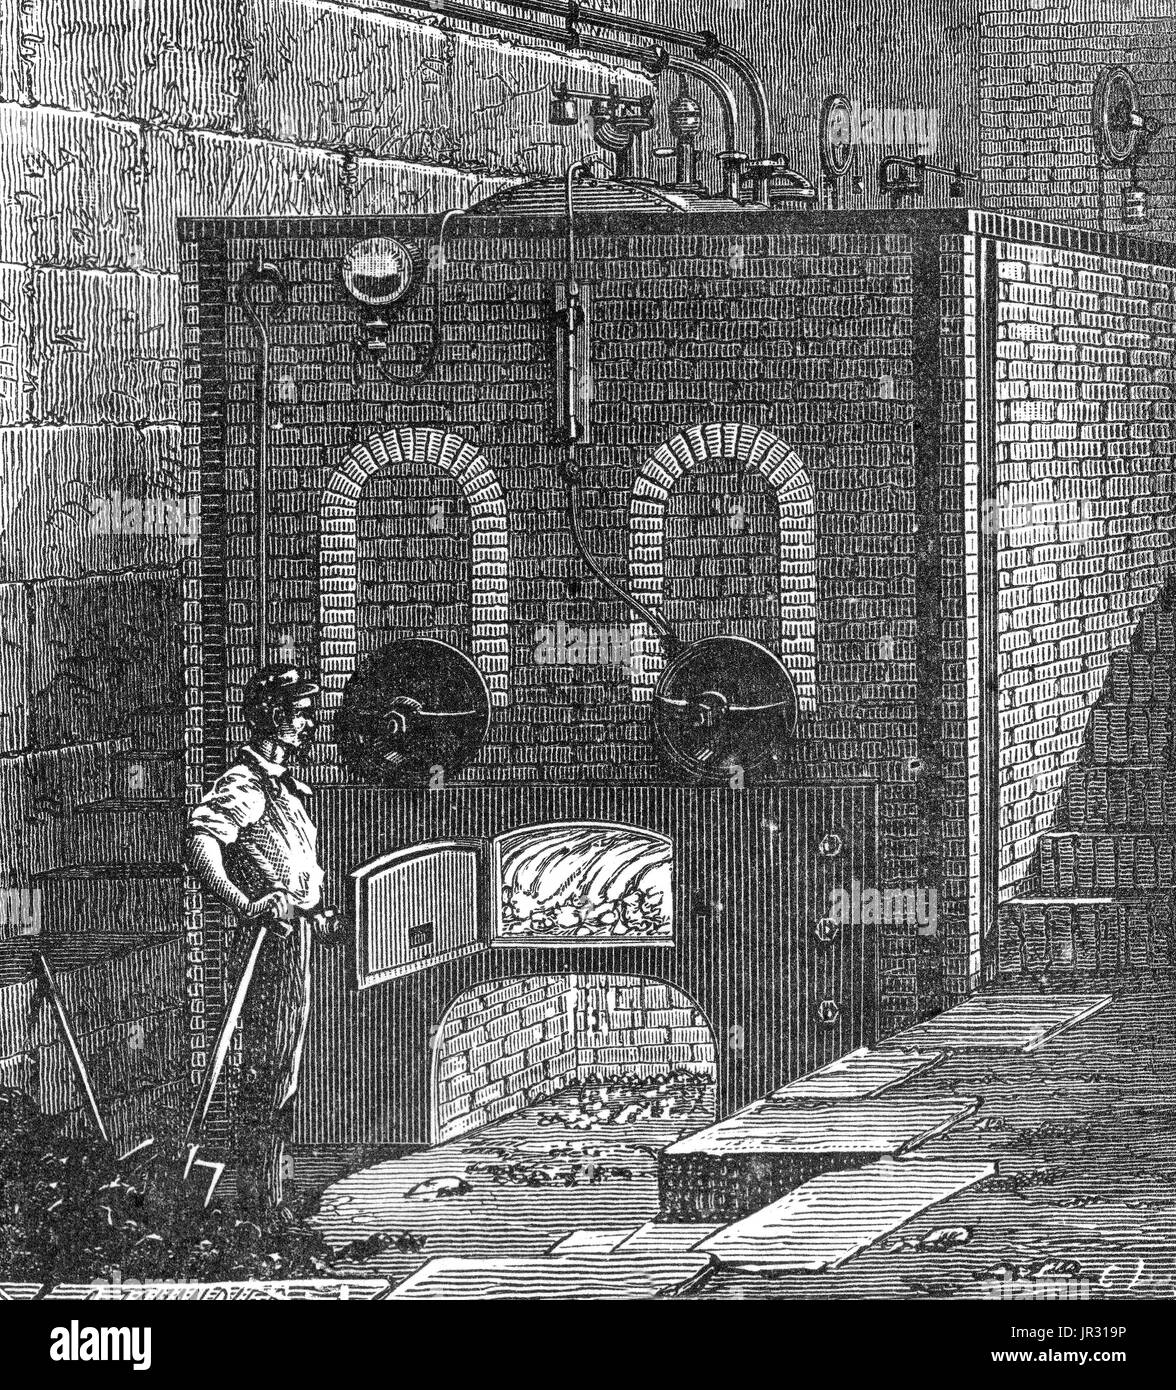 External view of the boiler of a steam engine. The first recorded rudimentary steam engine was the aeolipile described by Heron of Alexandria in the 1st century AD. Starting in the 12th century, a number of steam-powered devices were experimented with or proposed. In 1712 Thomas Newcomen's atmospheric engine became the first commercially successful engine using the principle of the piston and cylinder, which was the fundamental type steam engine used until the early 20th century. During the industrial revolution, steam engines started to replace water and wind power, and eventually became the  - Stock Image